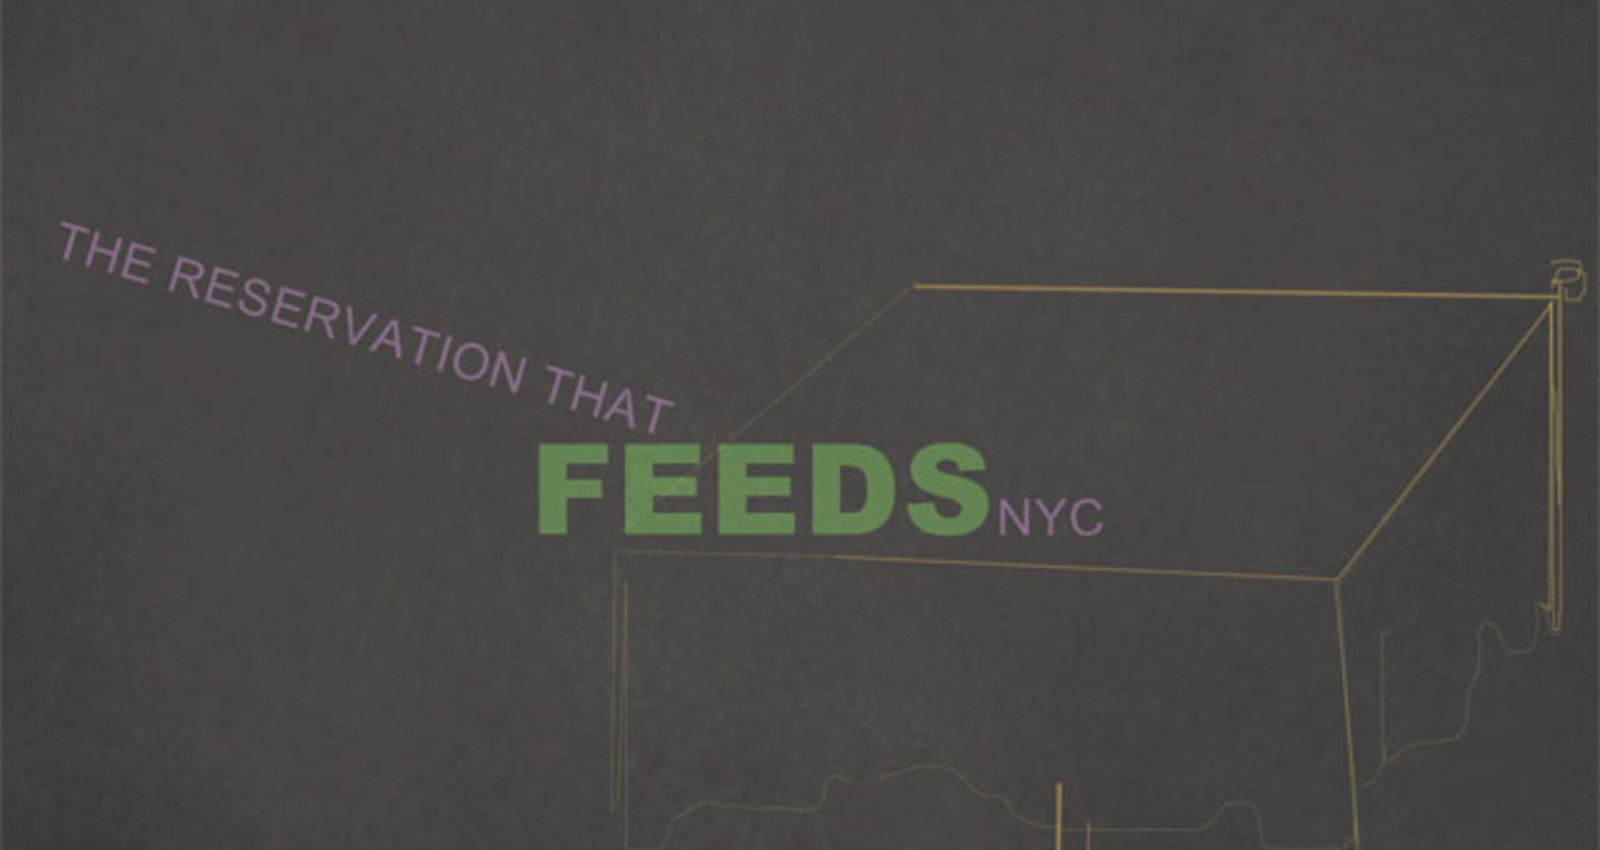 The Reservation that Feeds NYC